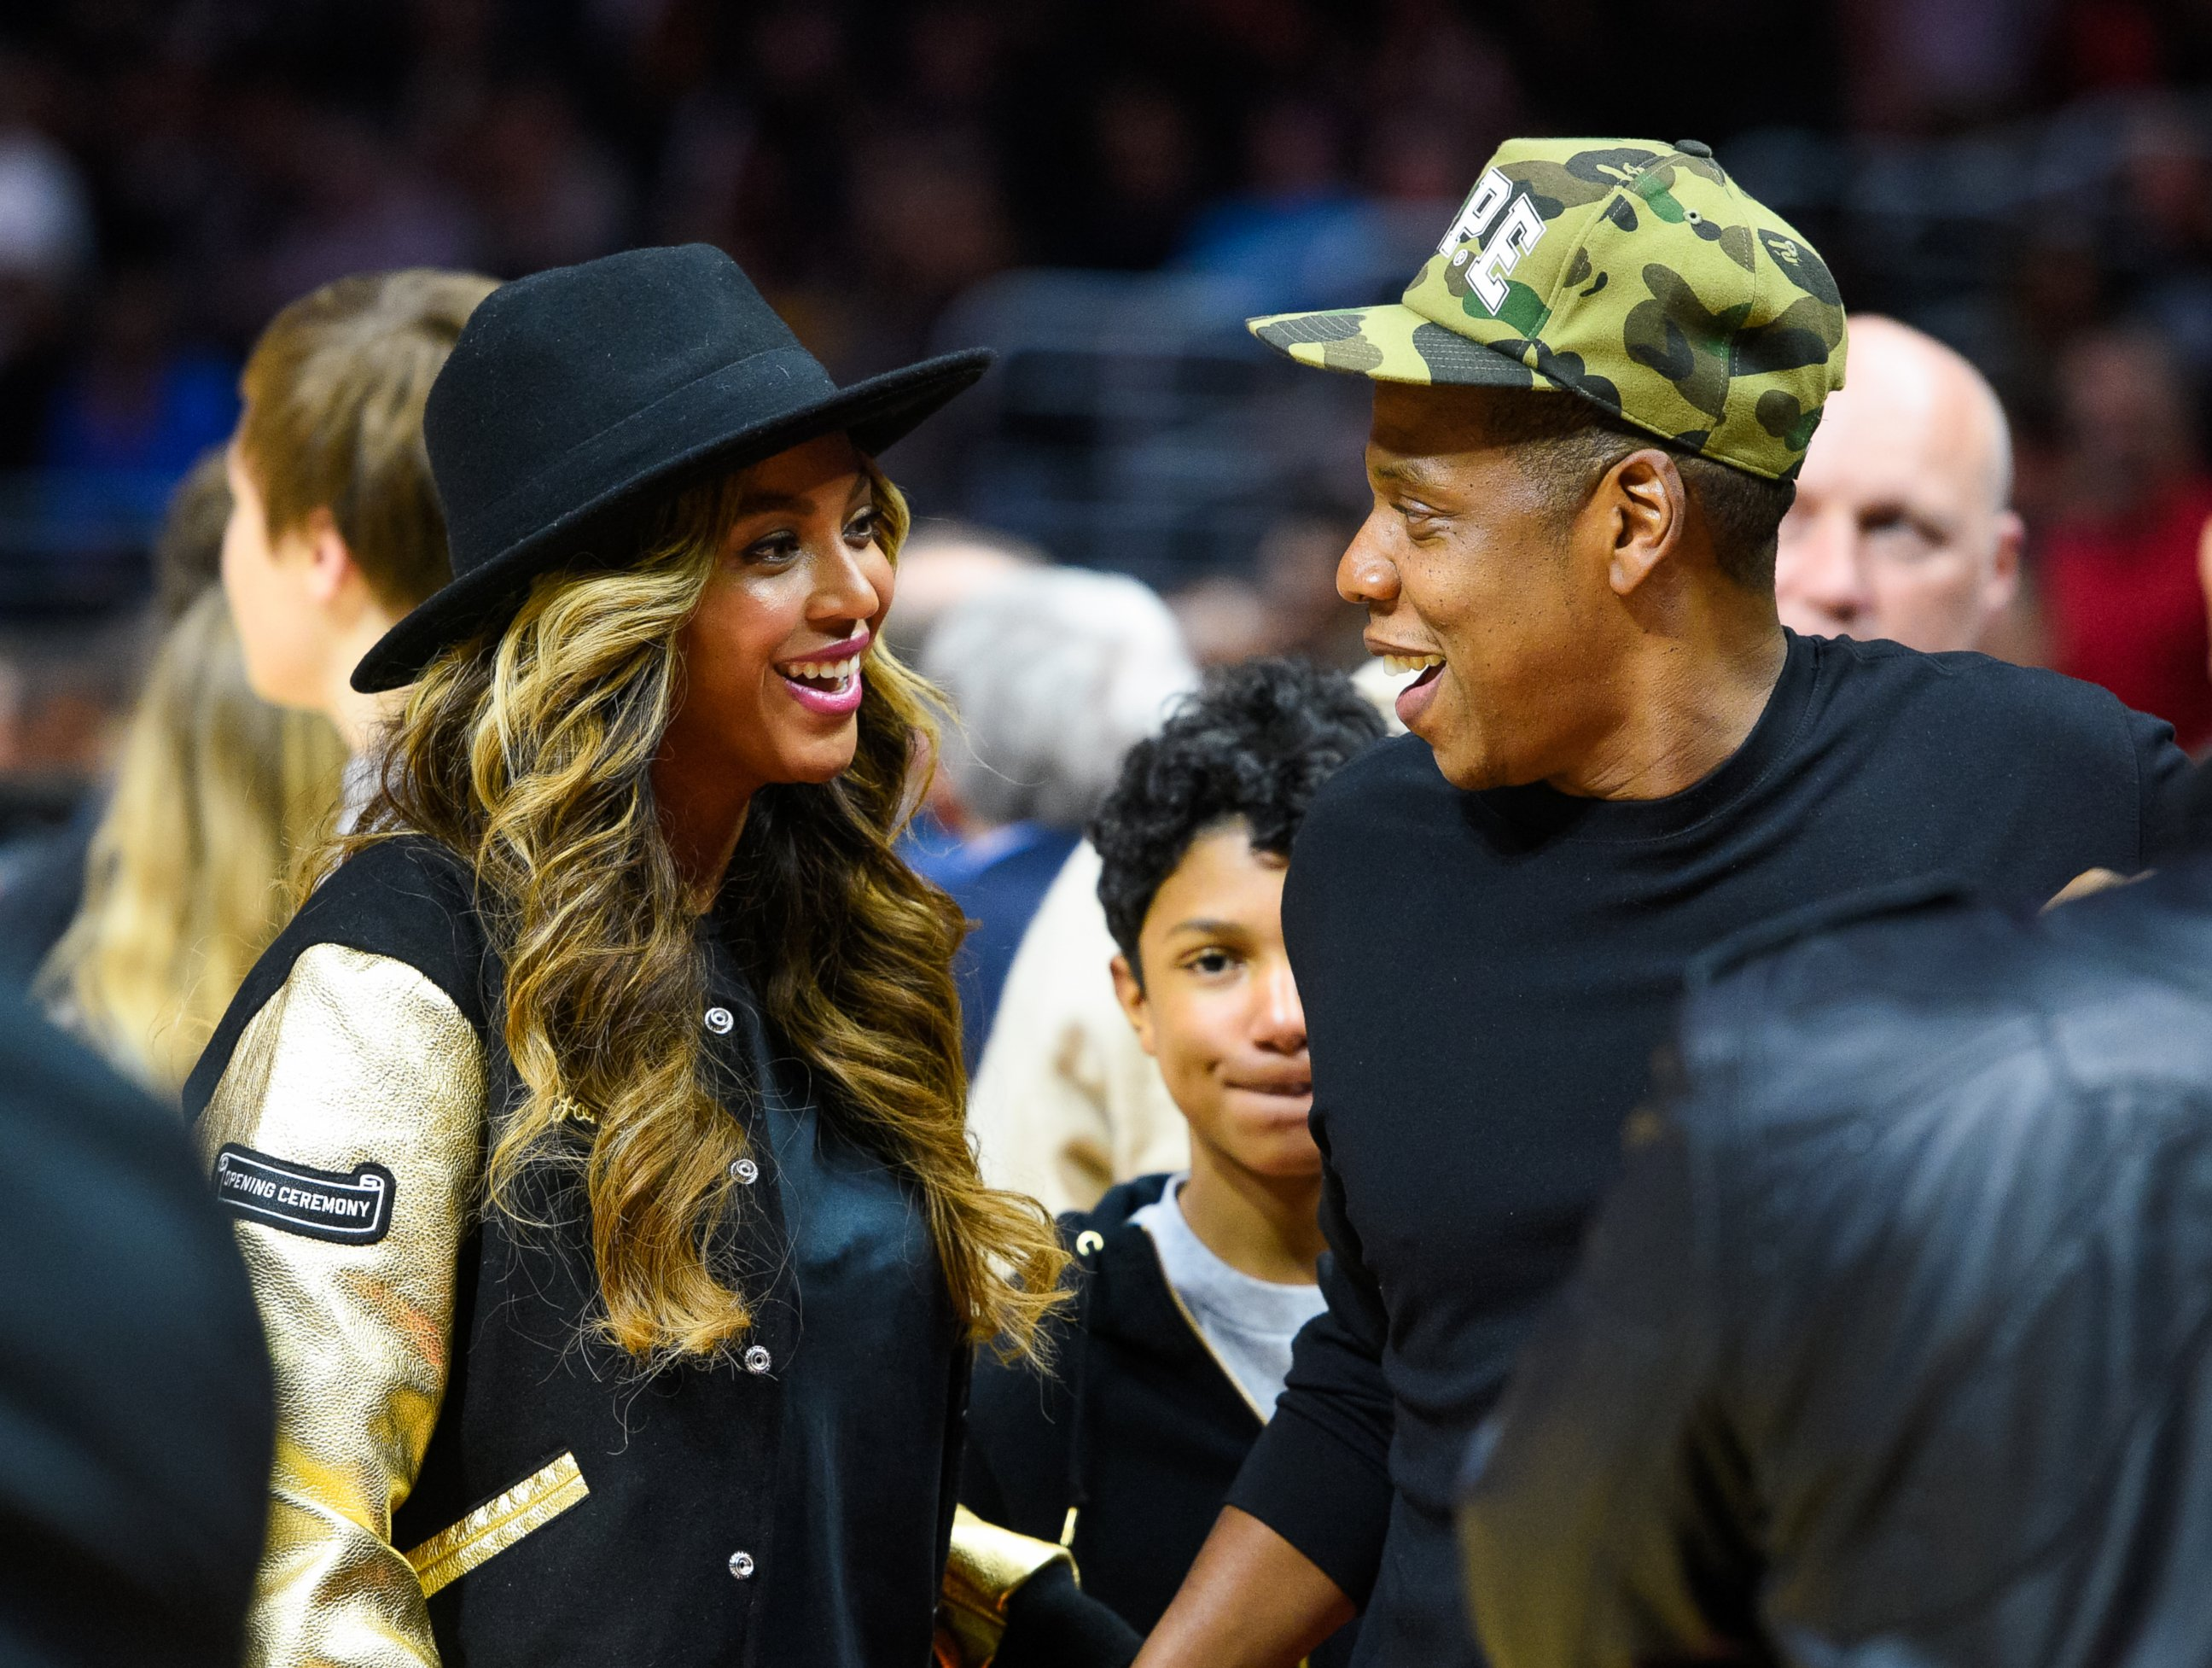 Beyonce and Jay Z Share a Laugh Amid Baby Rumors